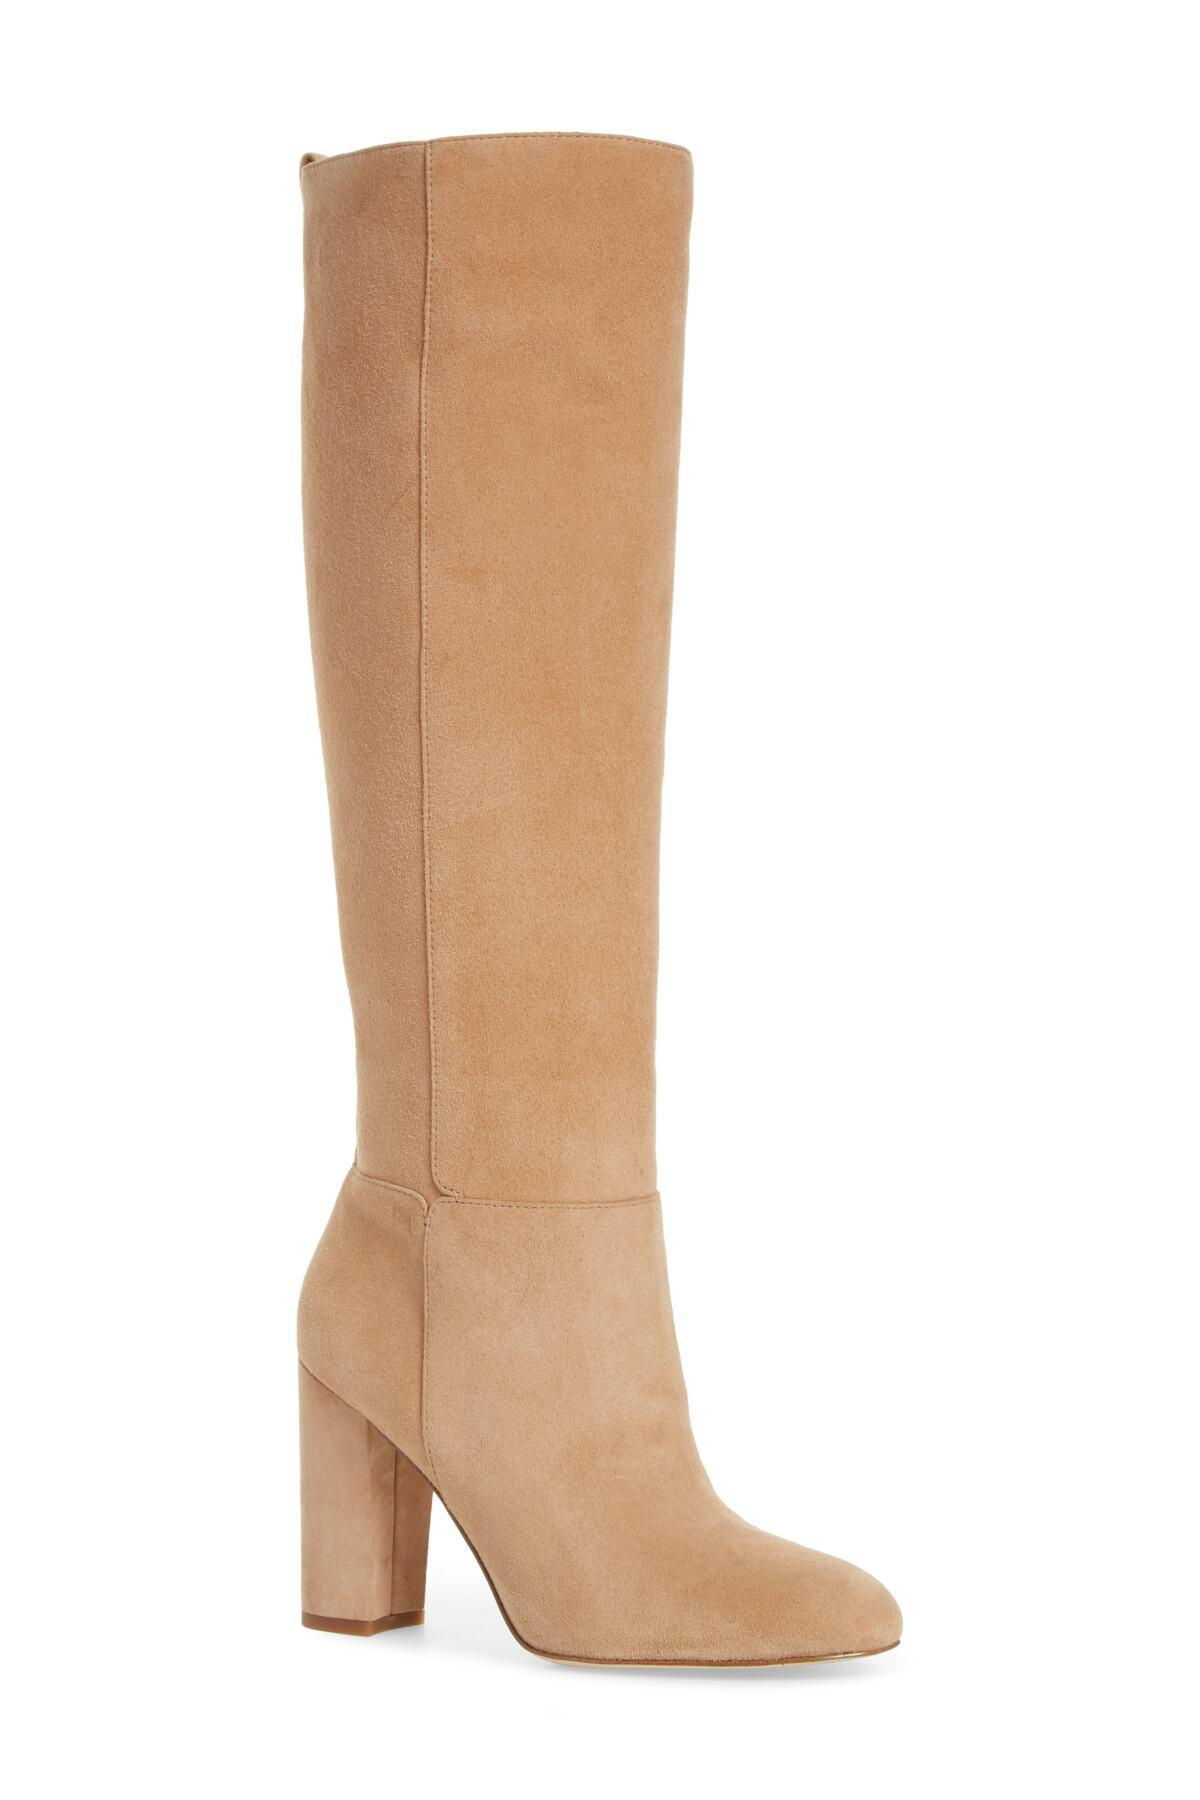 ca3626a1ed6 Sam Edelman. Brown Caprice Knee-high Boot (women).  85 From Nordstrom Rack